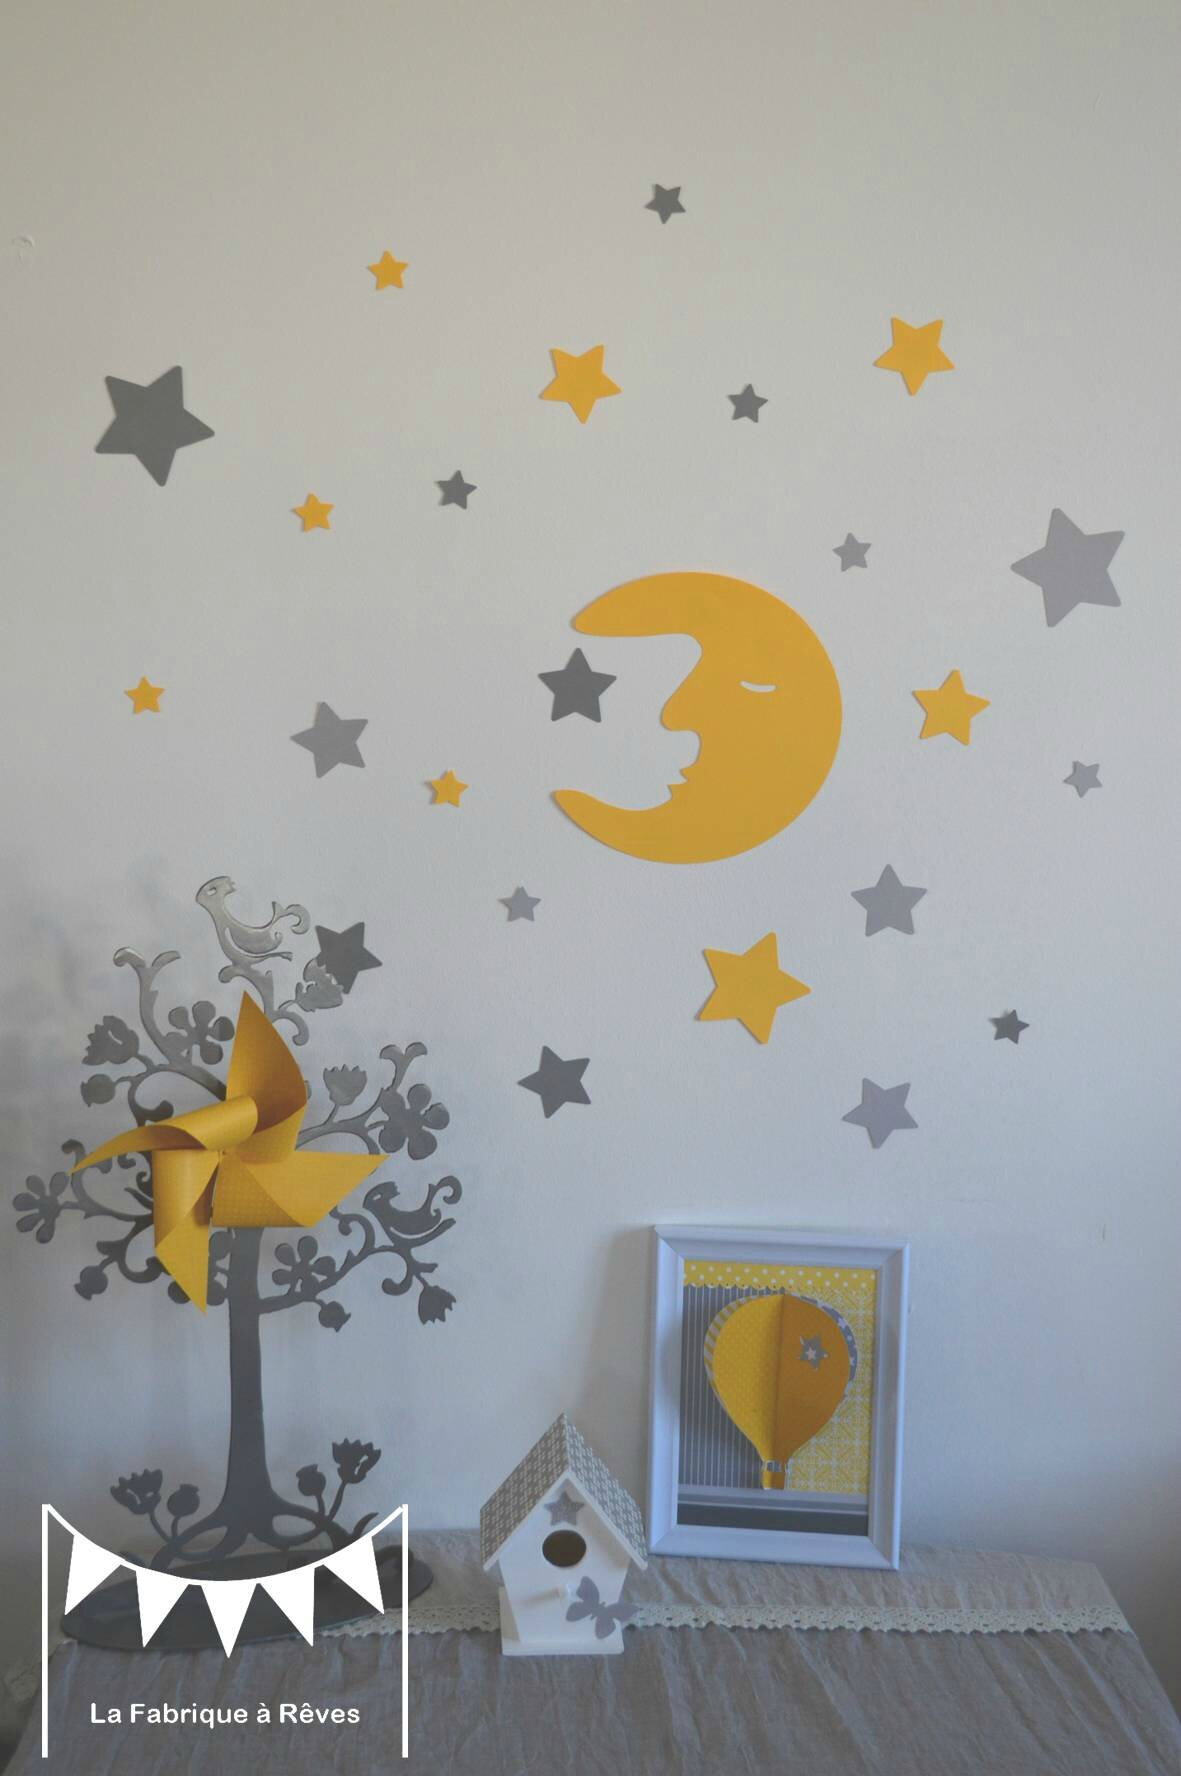 Stickers d coration chambre enfant fille b b gar on lune et toiles jaune gris photo de 18 for Chambre bebe jaune gris